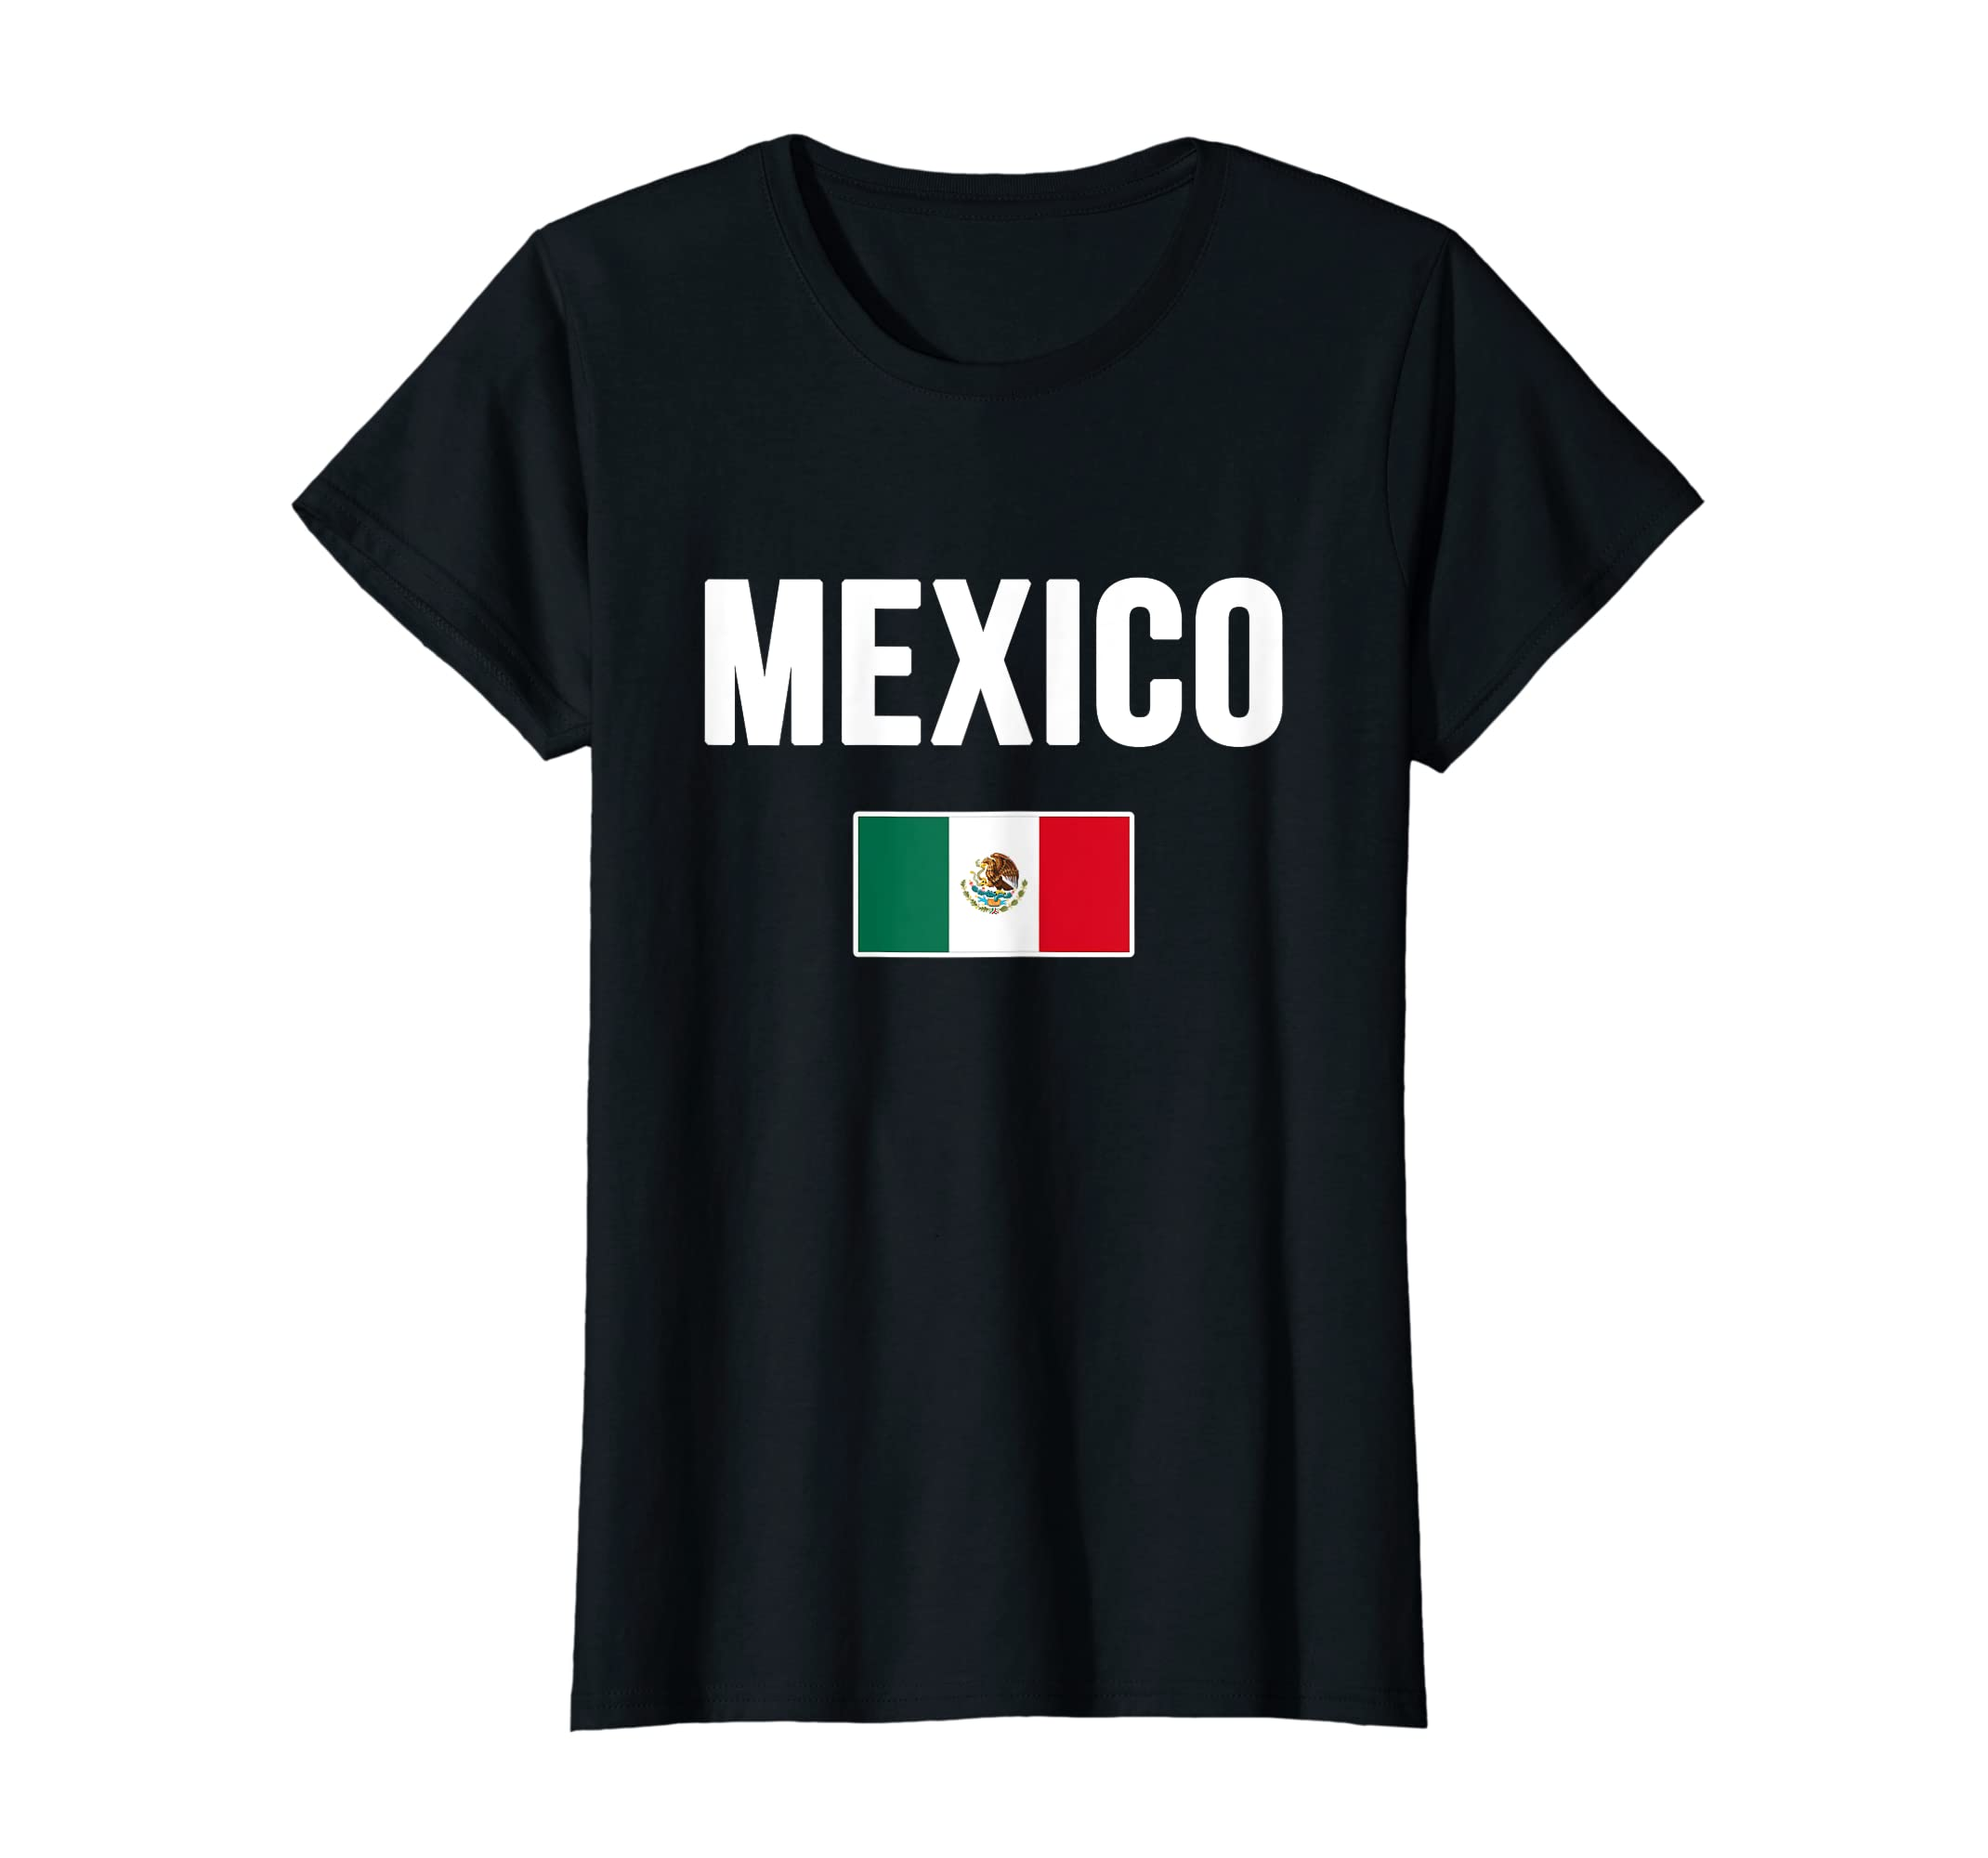 a0100774312 Amazon.com  Mexico T-shirt Mexican Flag Love Gift Souvenir  Clothing